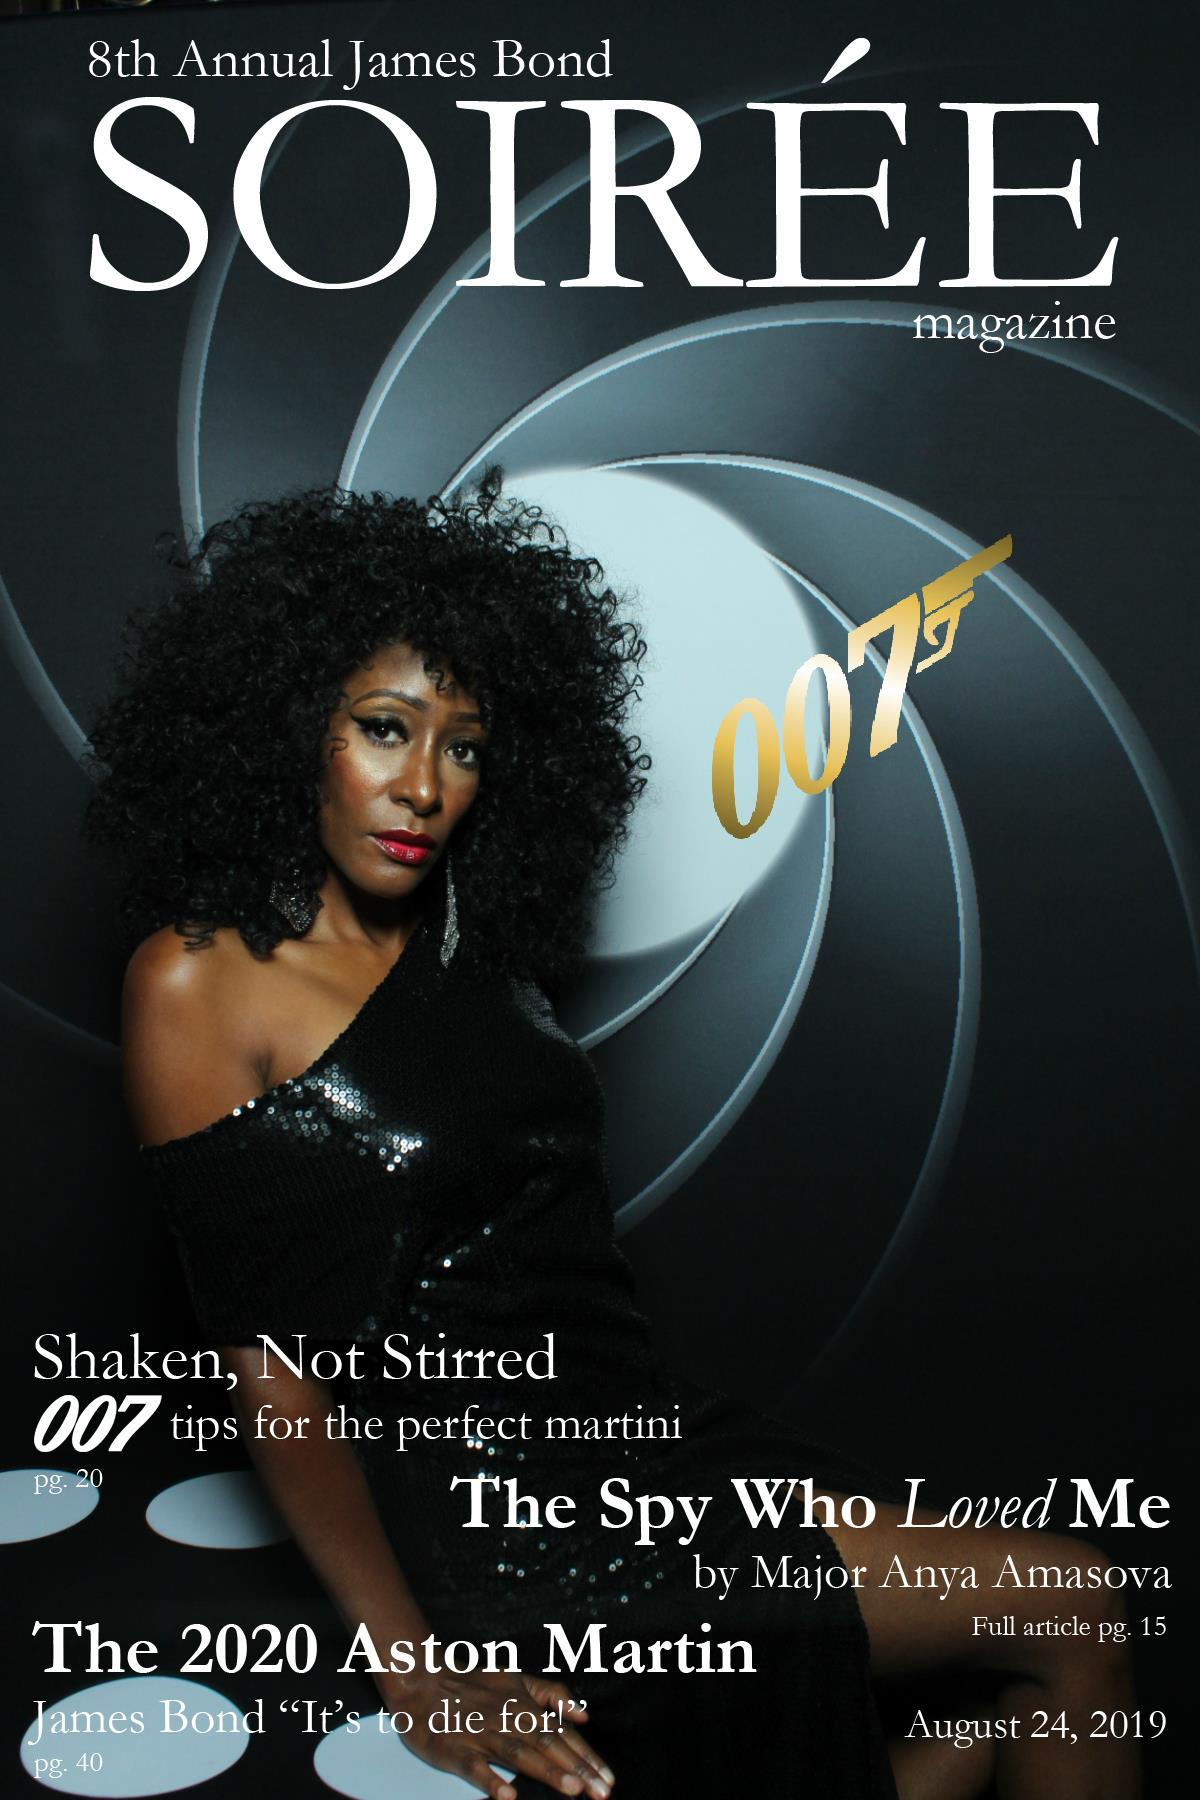 ames Bond Soiree, James Bond Decor, Soiree James Bond, James Bond Theme Pittsburgh, James Bond Theme Casino Night, Magazine Cover